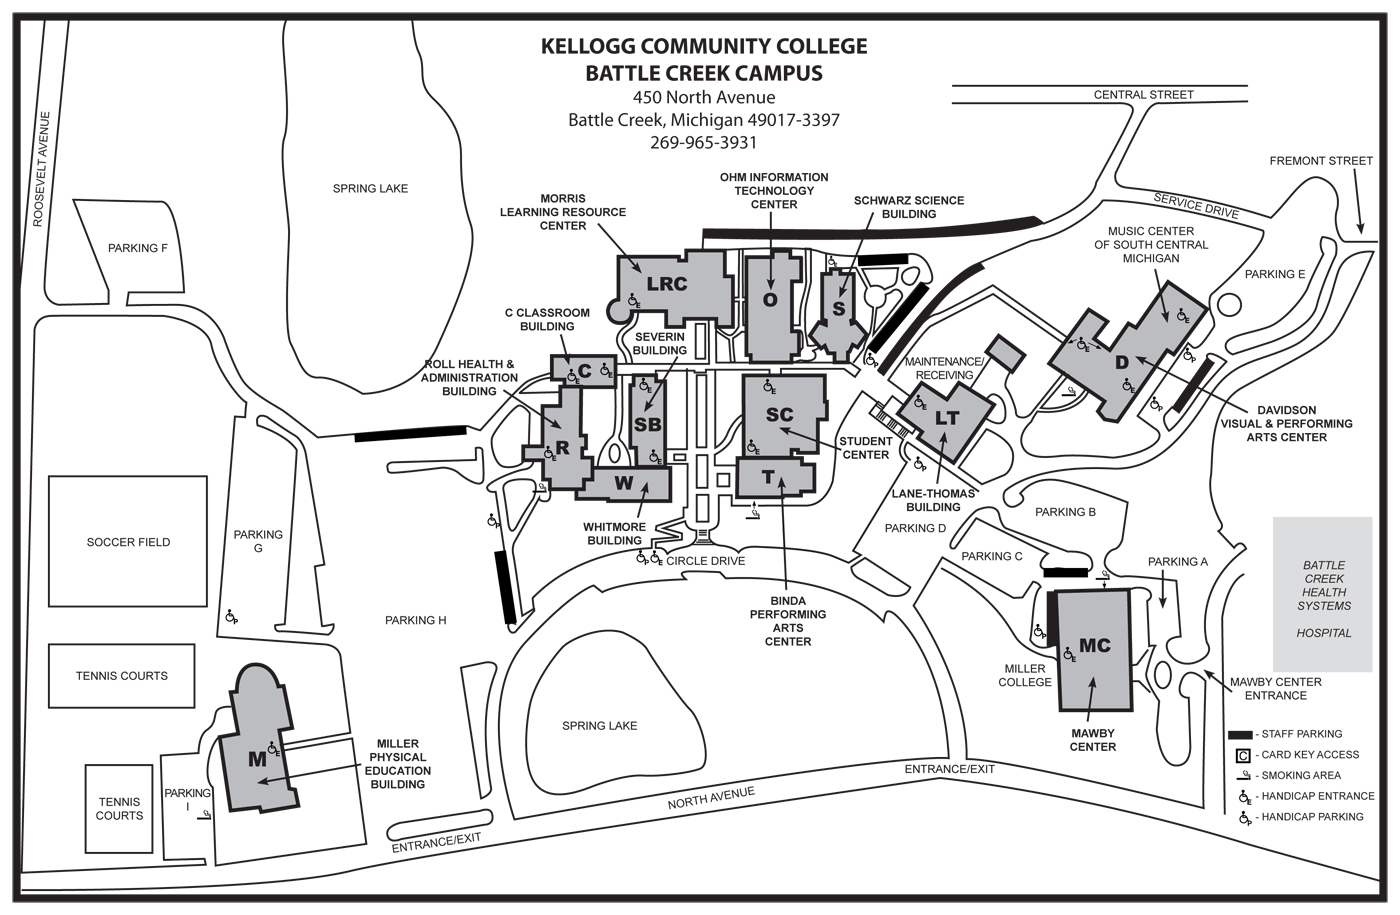 Some parking lots closed this weekend on North Ave. campus – KCC Daily